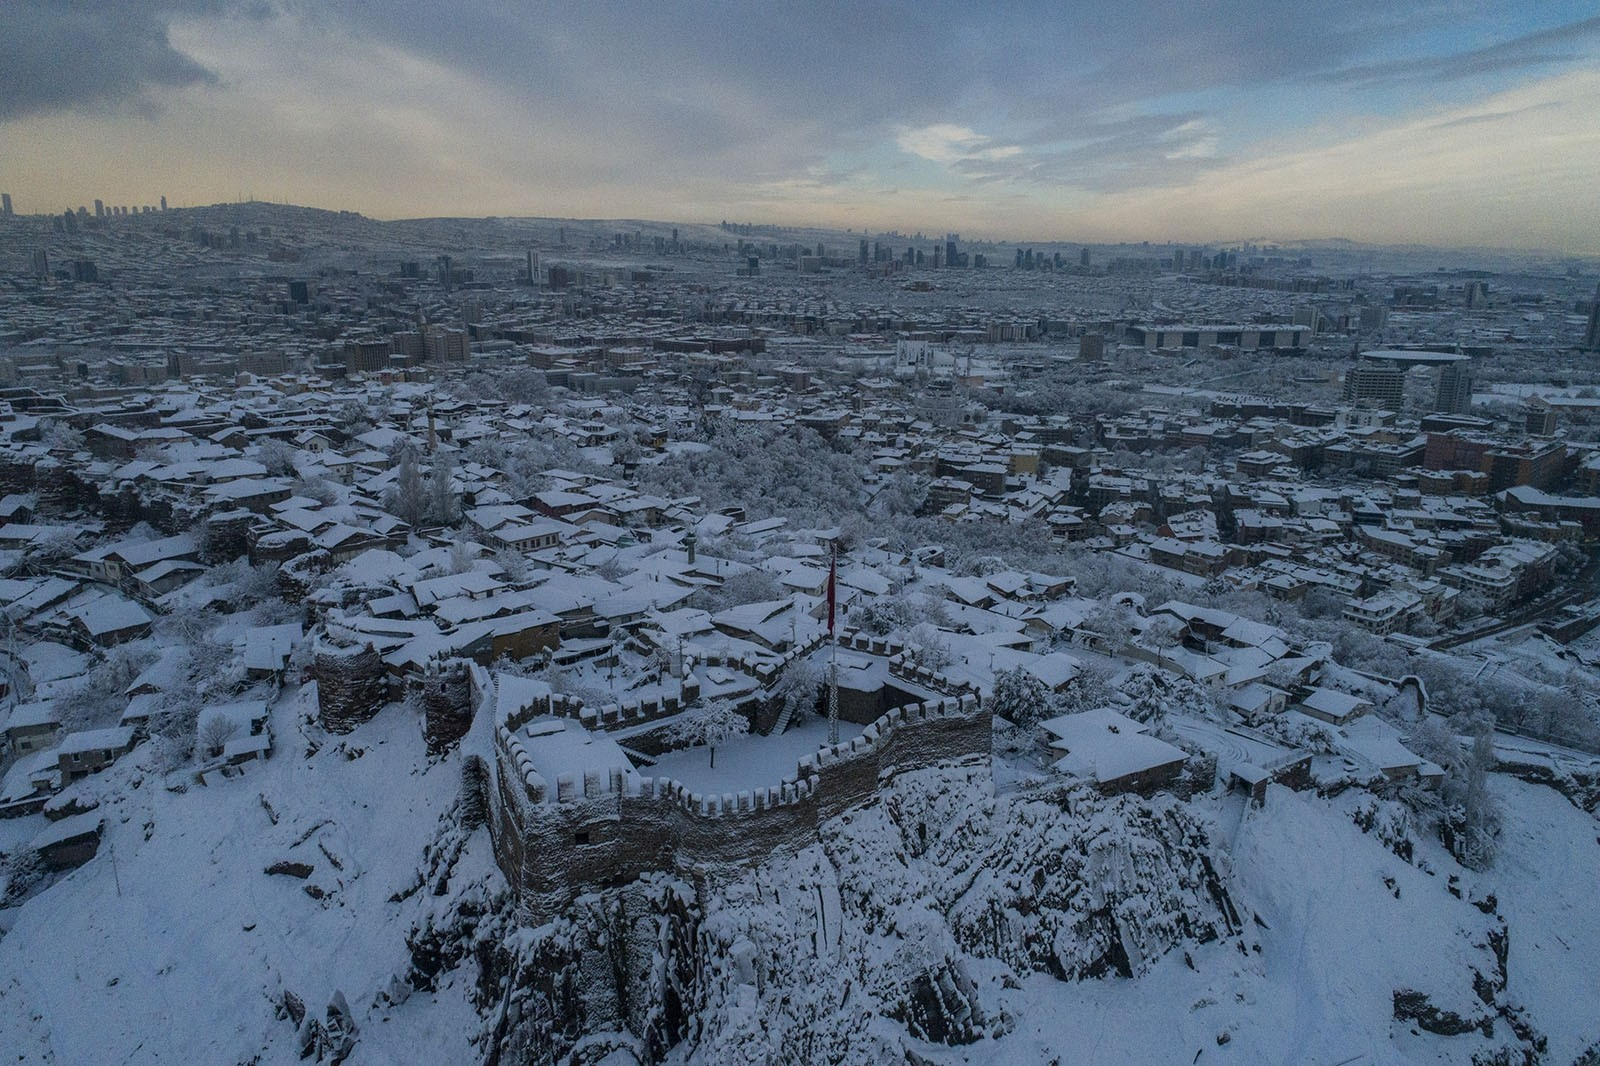 Snow blanket covers most of Turkey, warms hearts